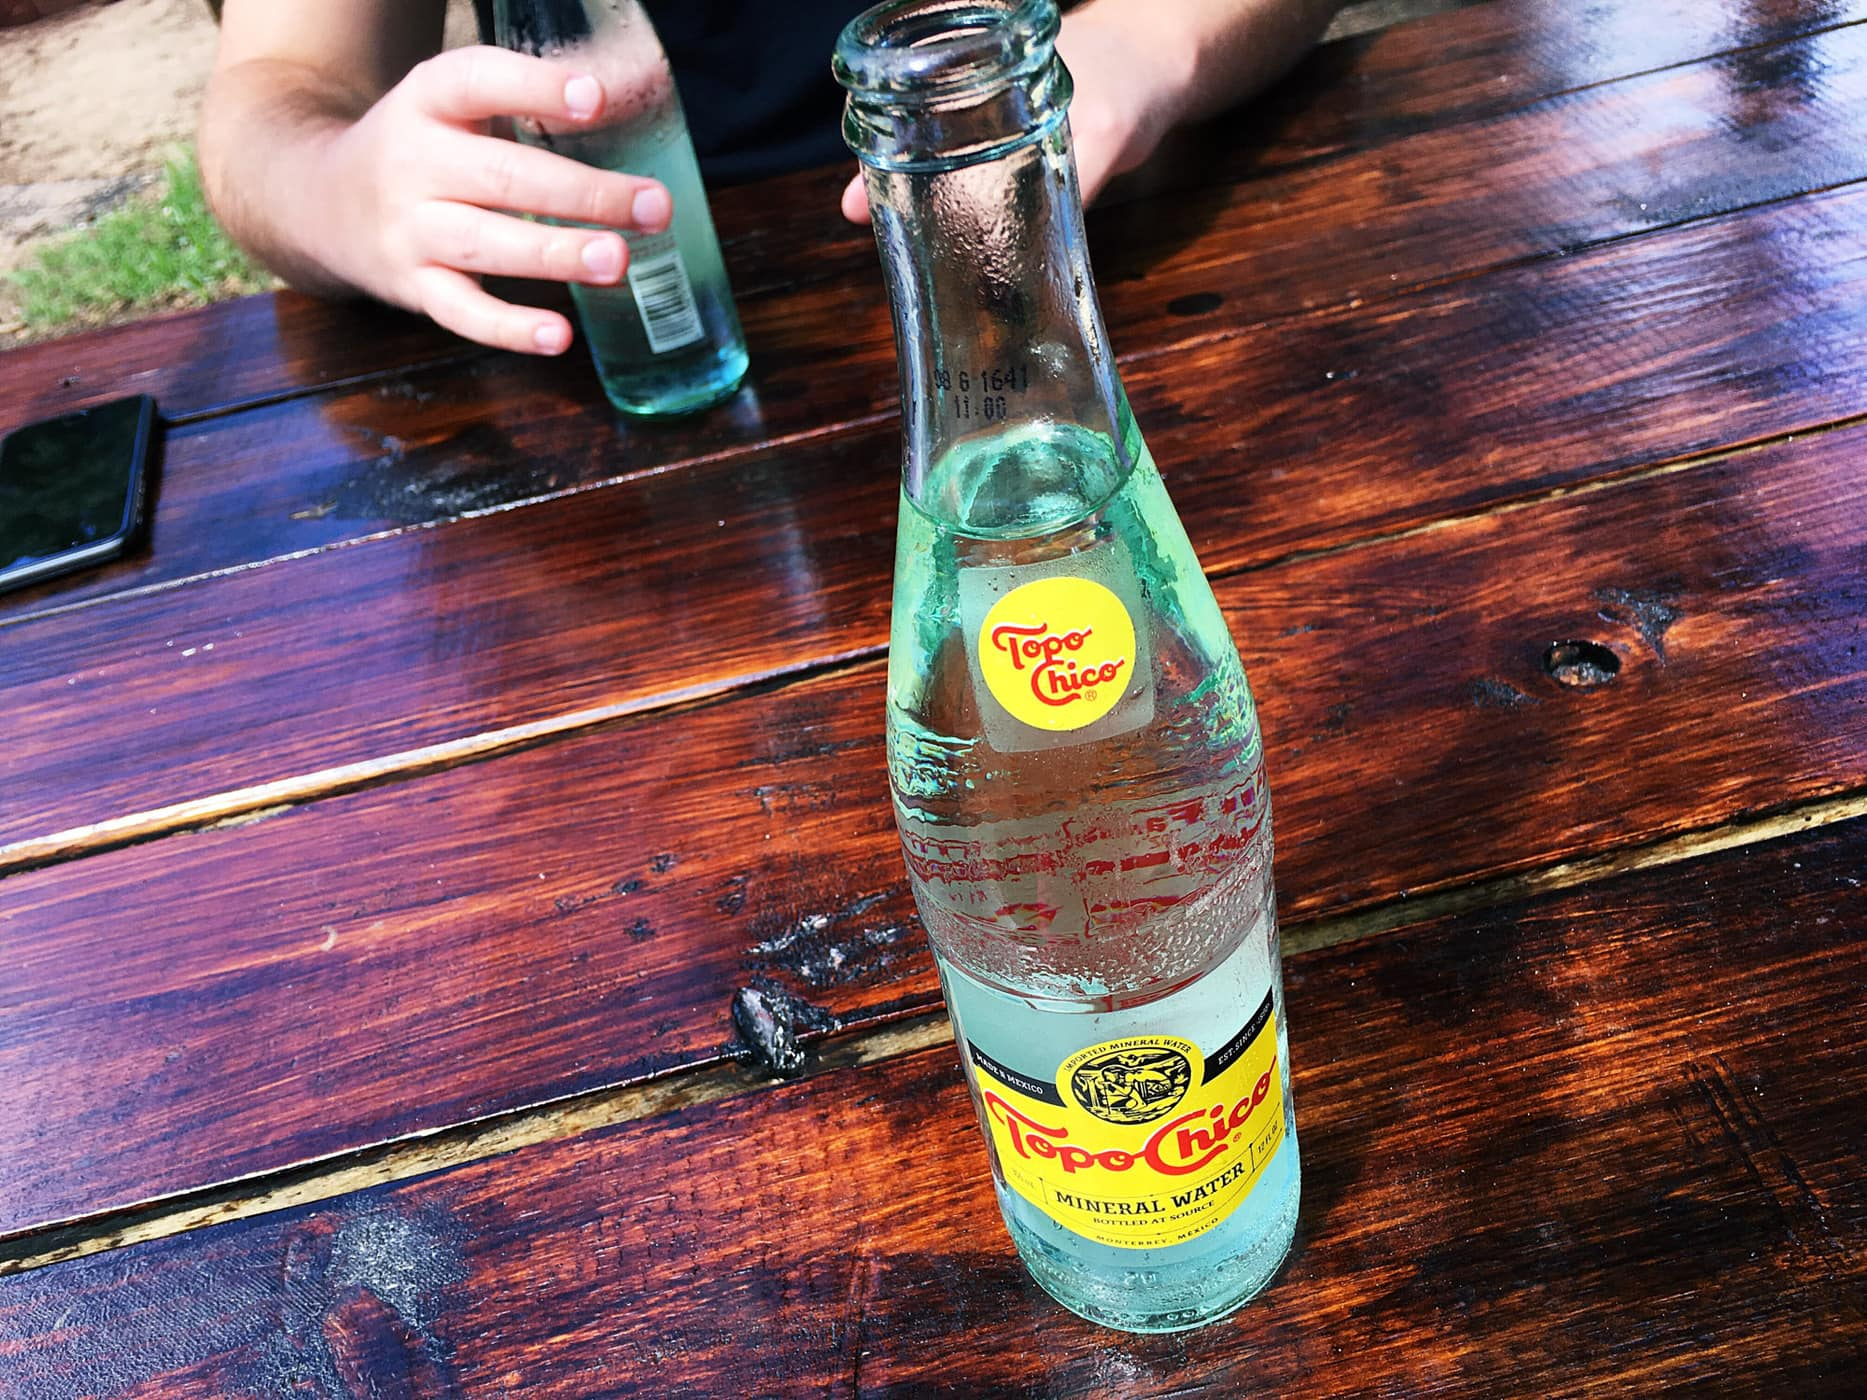 Topo Chico at Micklethwait Craft Meats food truck in Austin, Texas.